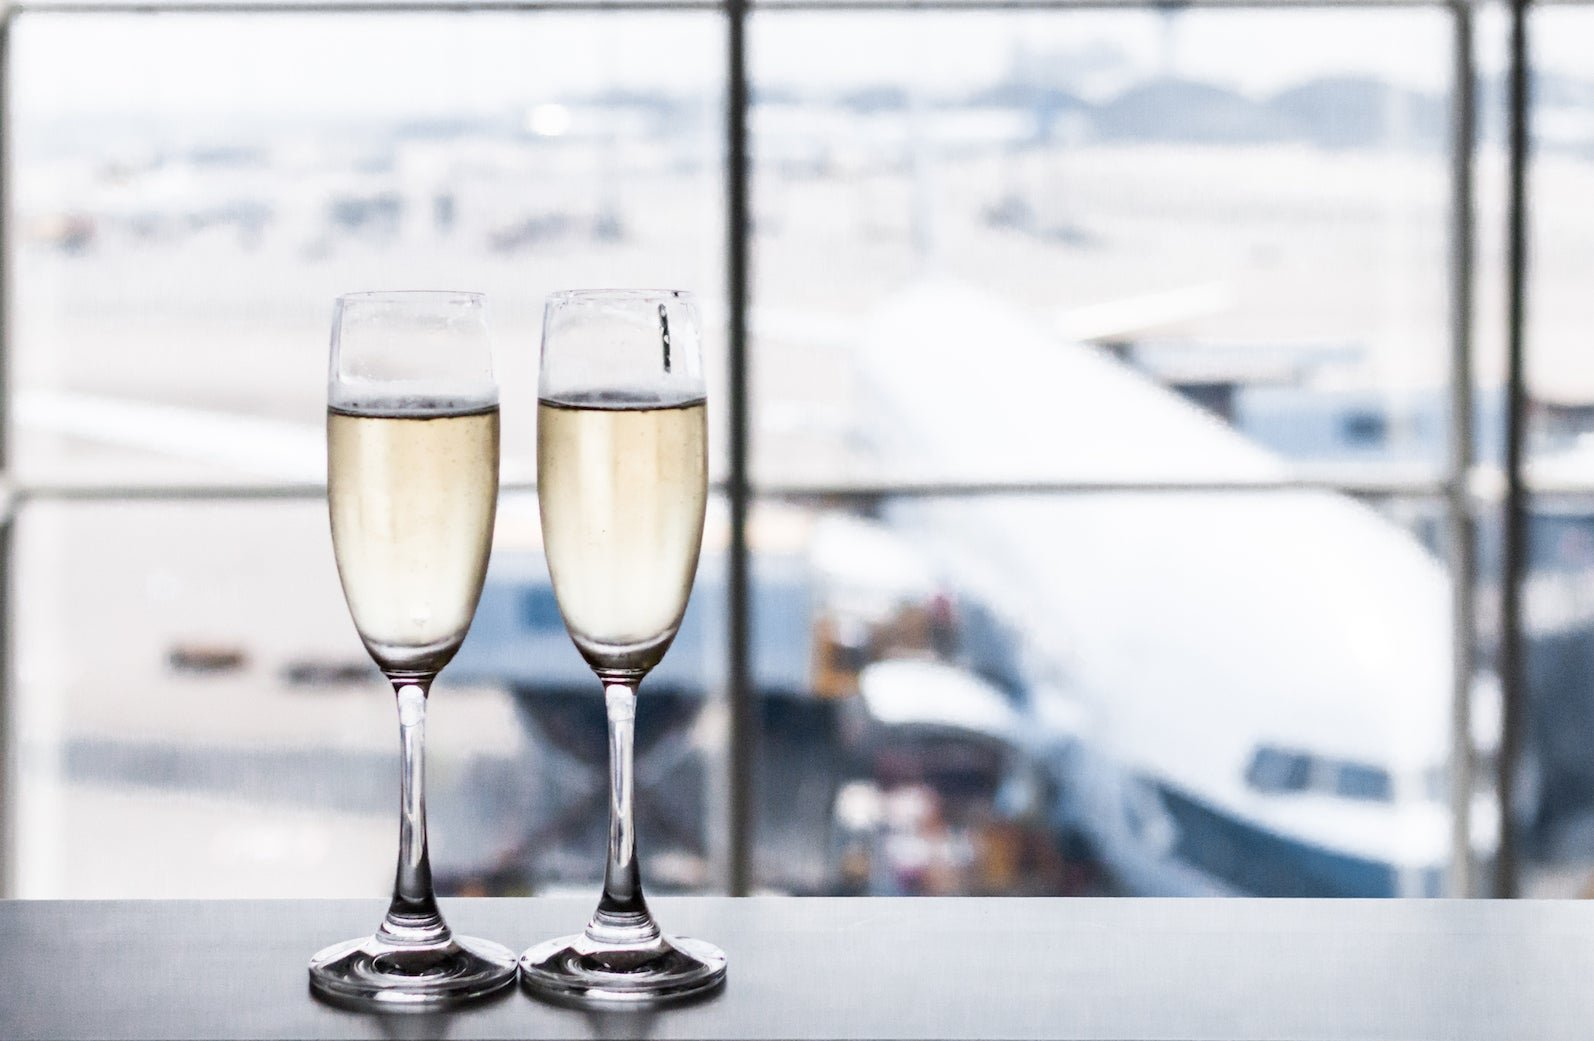 A first timer's guide to flying in first or business class